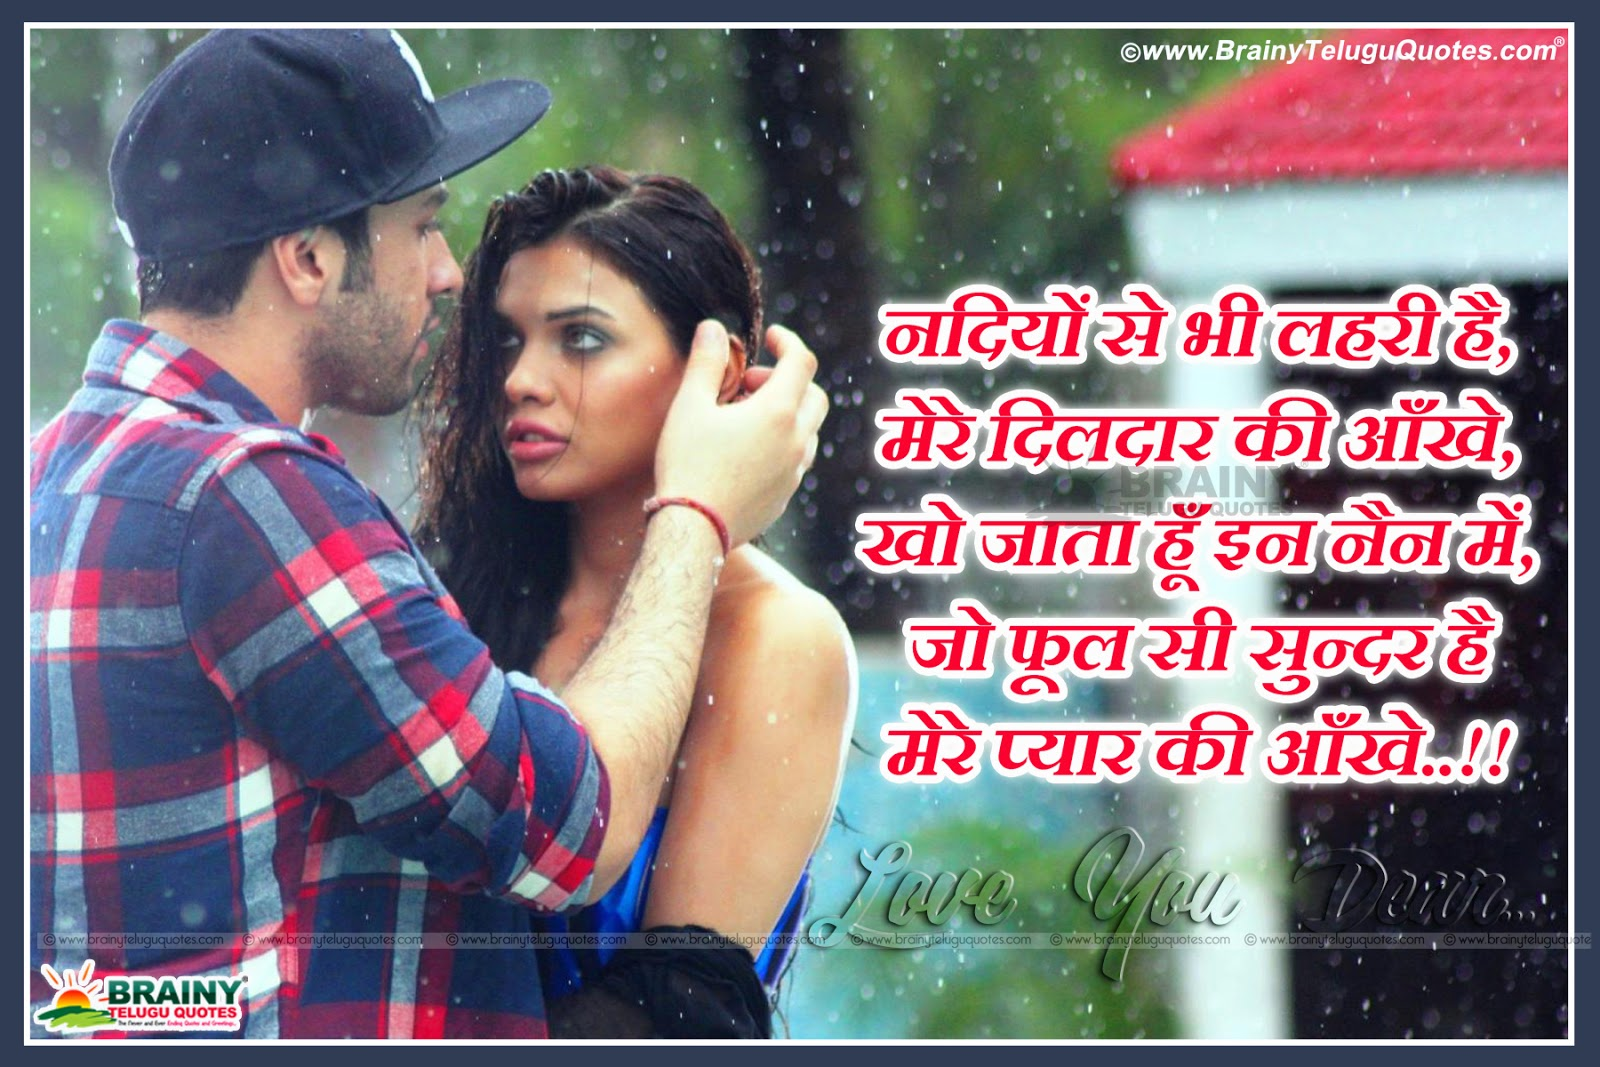 Images Of Love Couples In Rain With Quotes Hindi ...